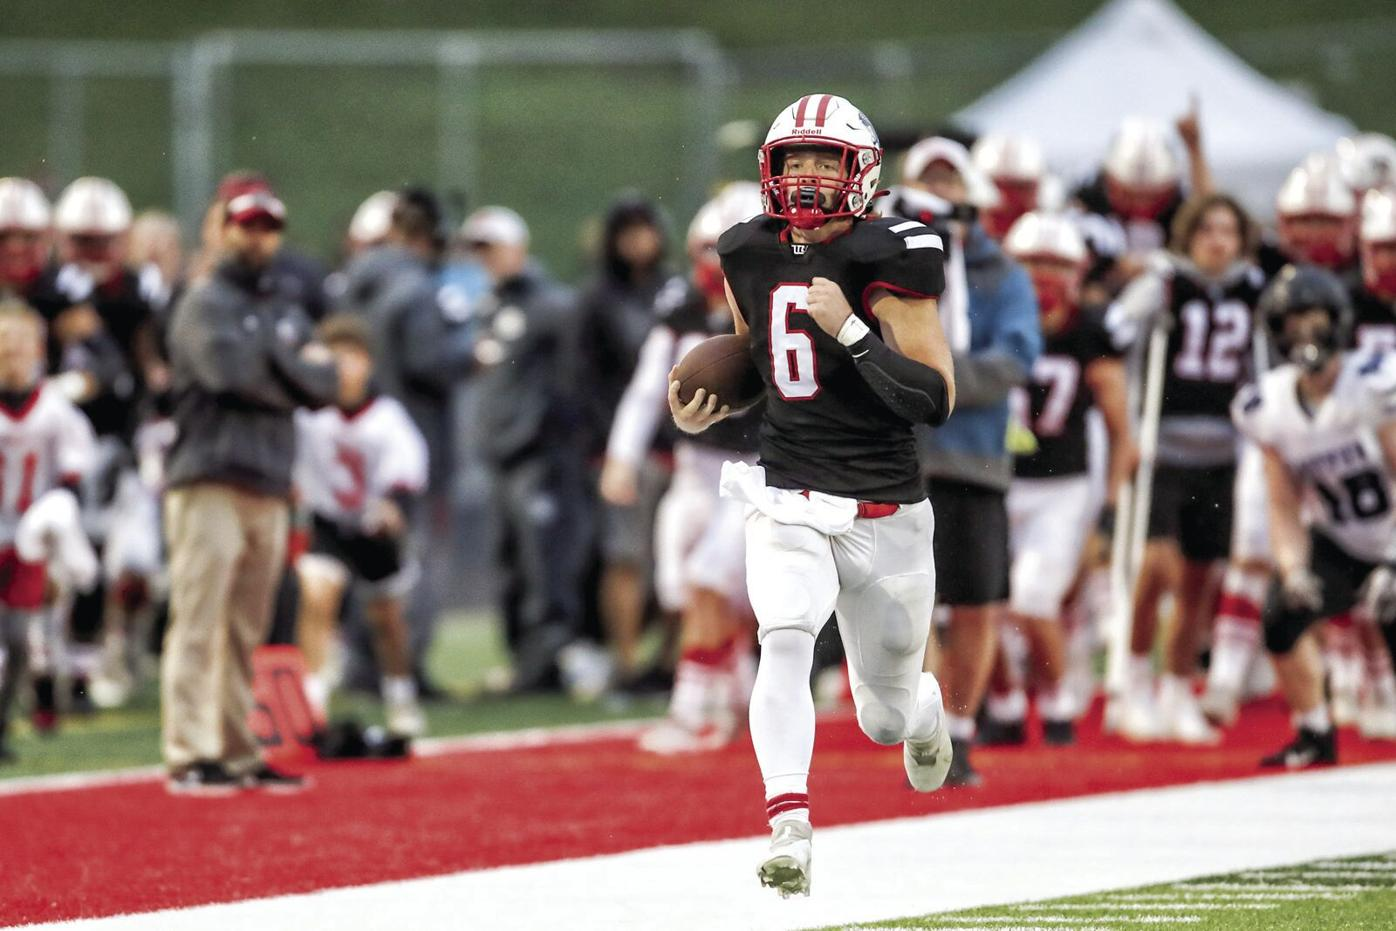 Week 1 football: Gold Division has the edge over Maroon